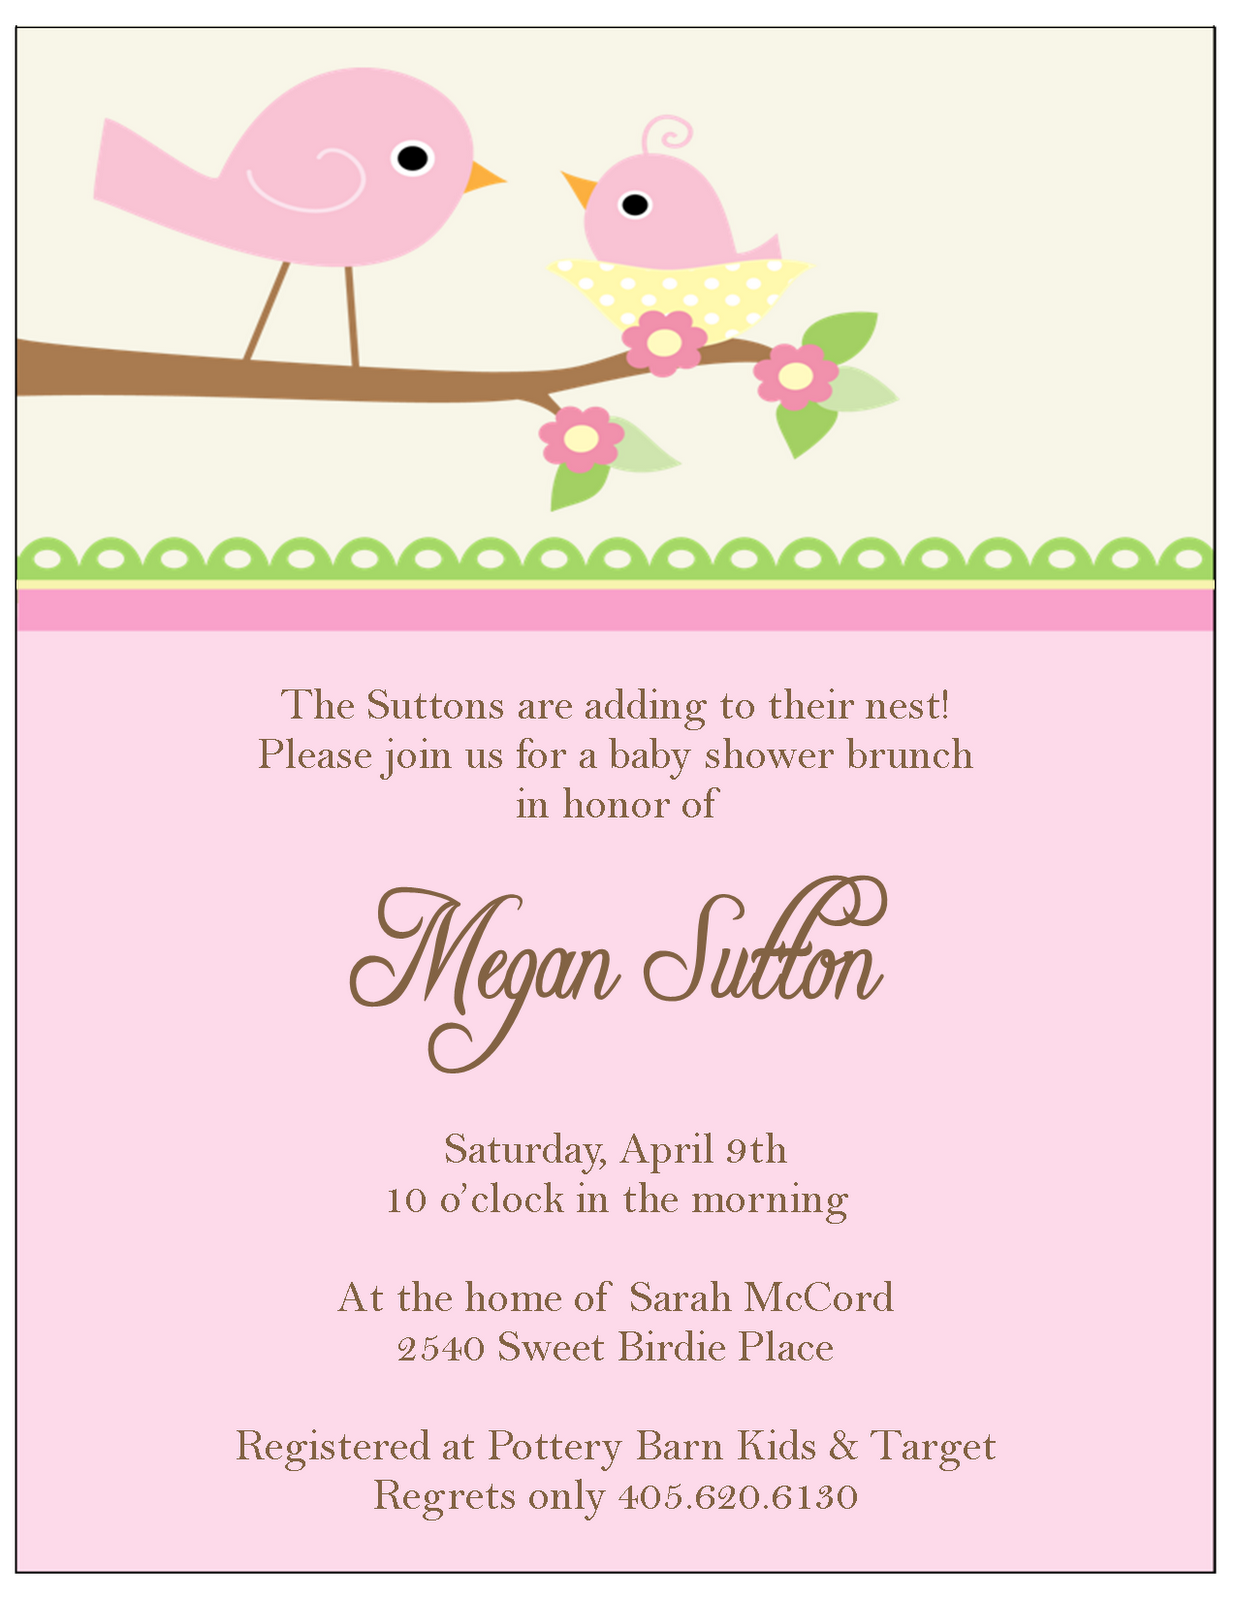 Baby shower girl invitation - Baby Shower Decoration Ideas